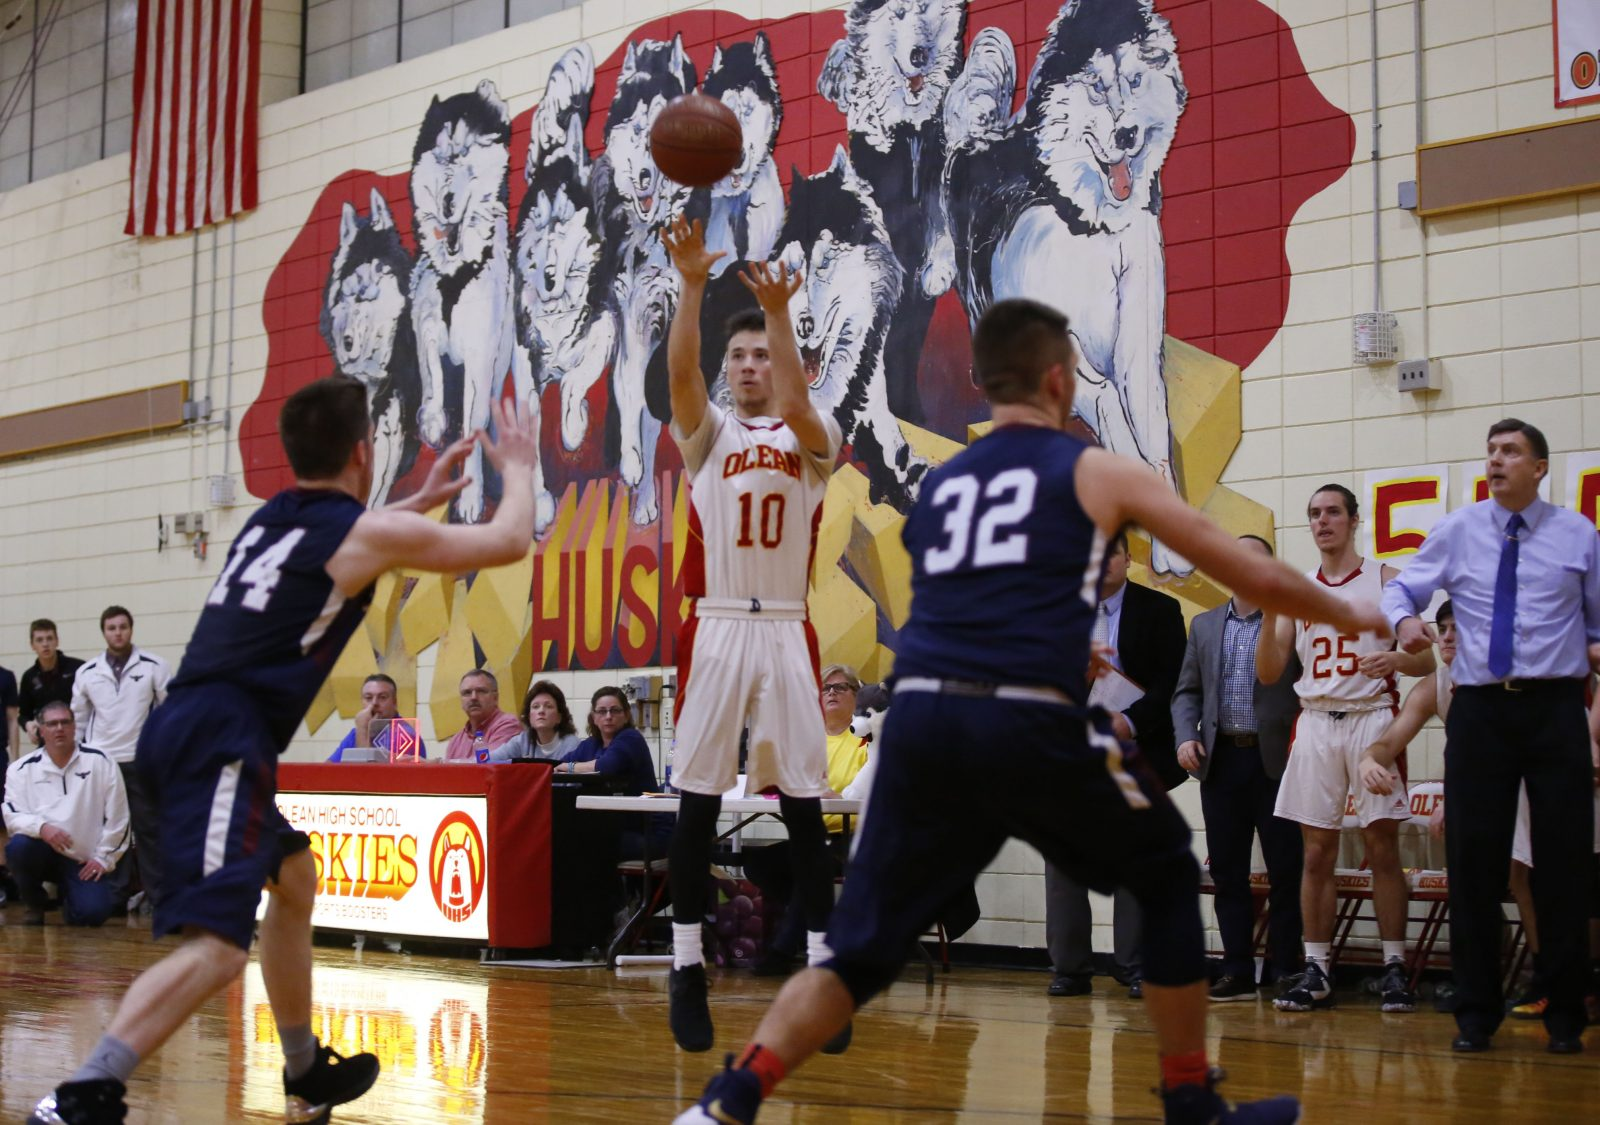 Olean's Monty Shoemaker hits the game-winning three-pointer against Chautauqua Lake. The triumph is part of the Huskies' current 15-game winning streak. (Harry Scull Jr./Buffalo News)